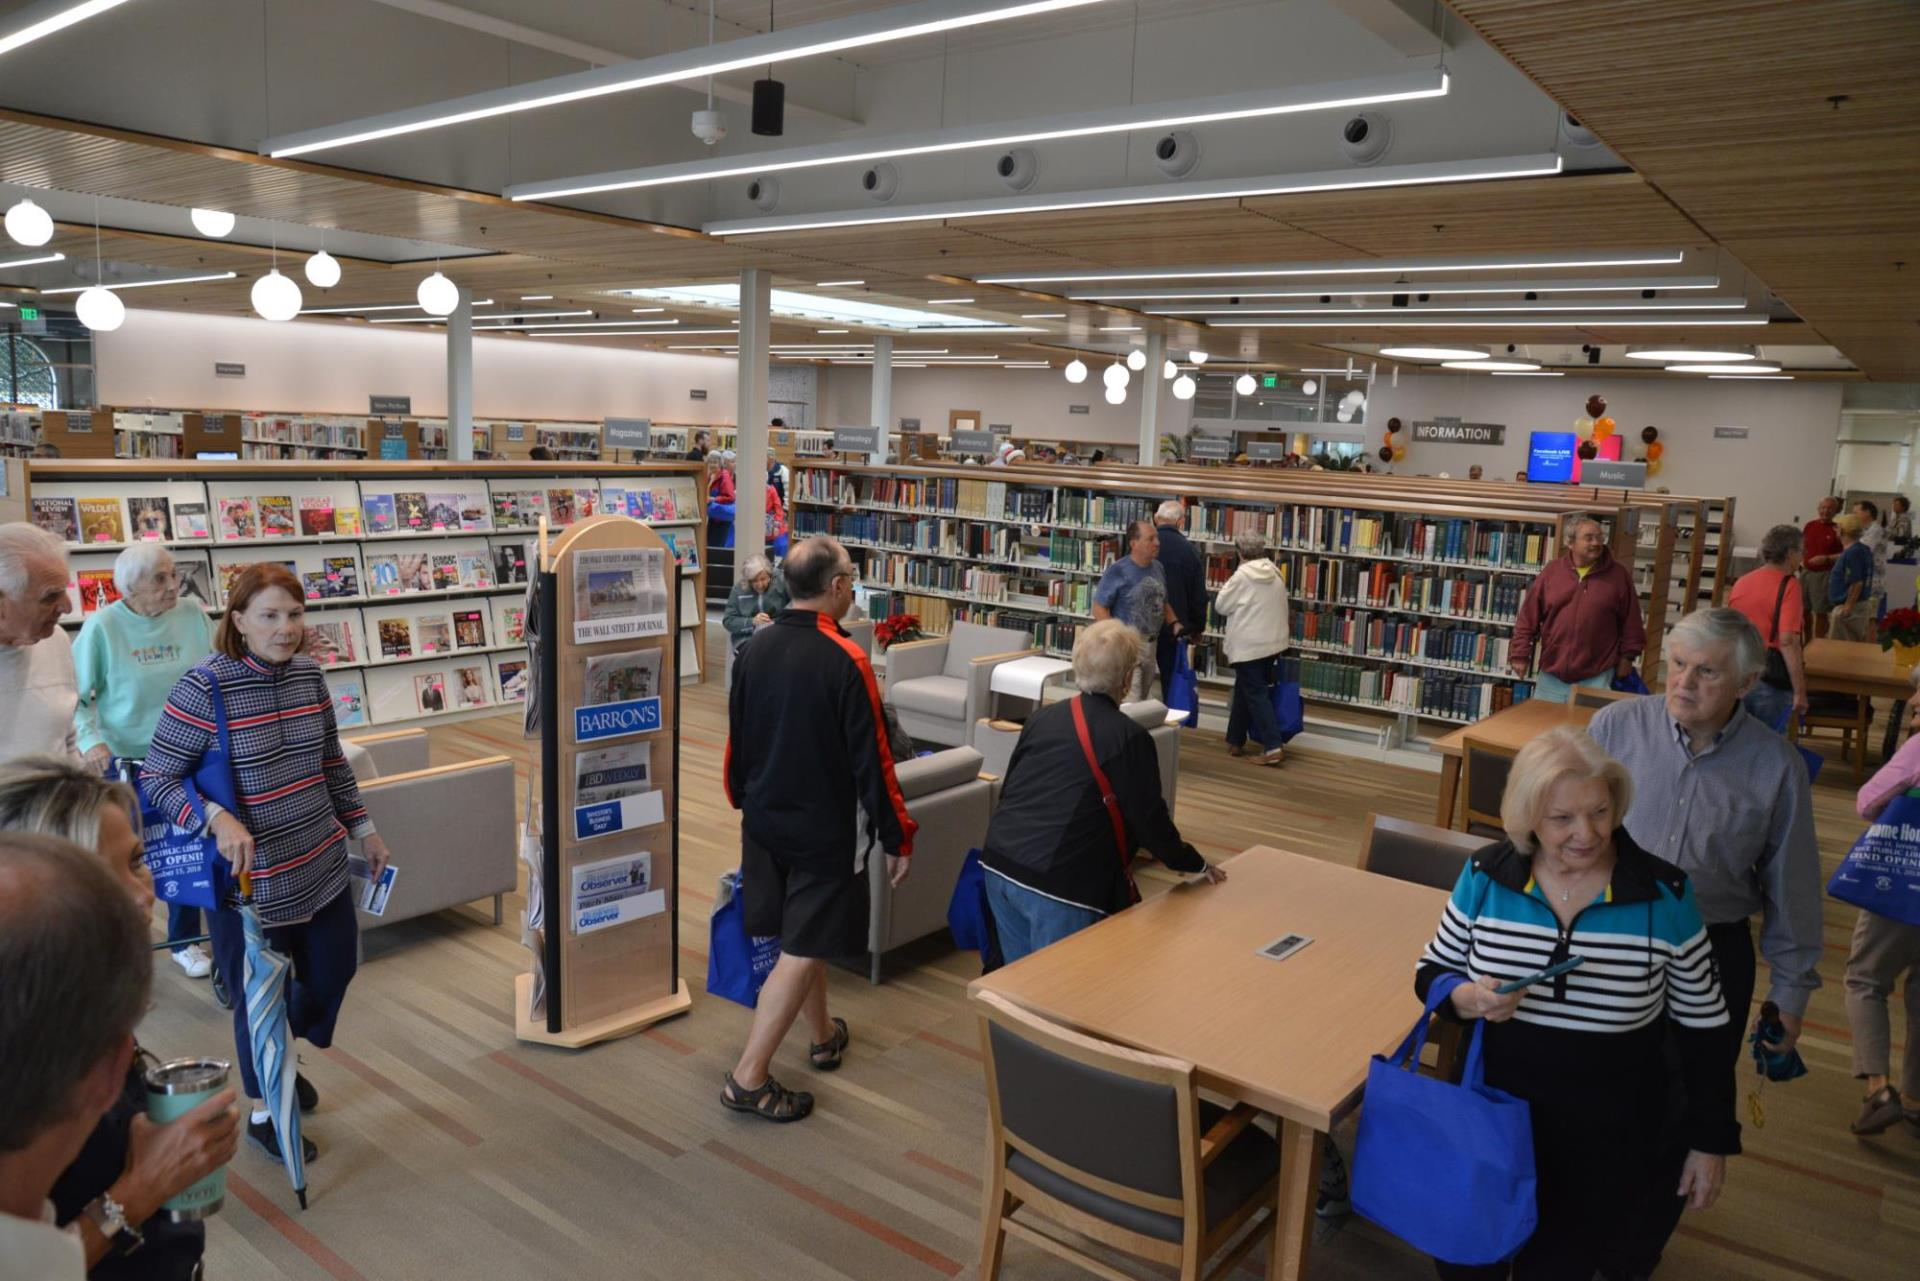 Community members explore the new William H. Jervey Jr. Venice Public library following its ribbon-cutting ceremony Dec. 15, 2018.